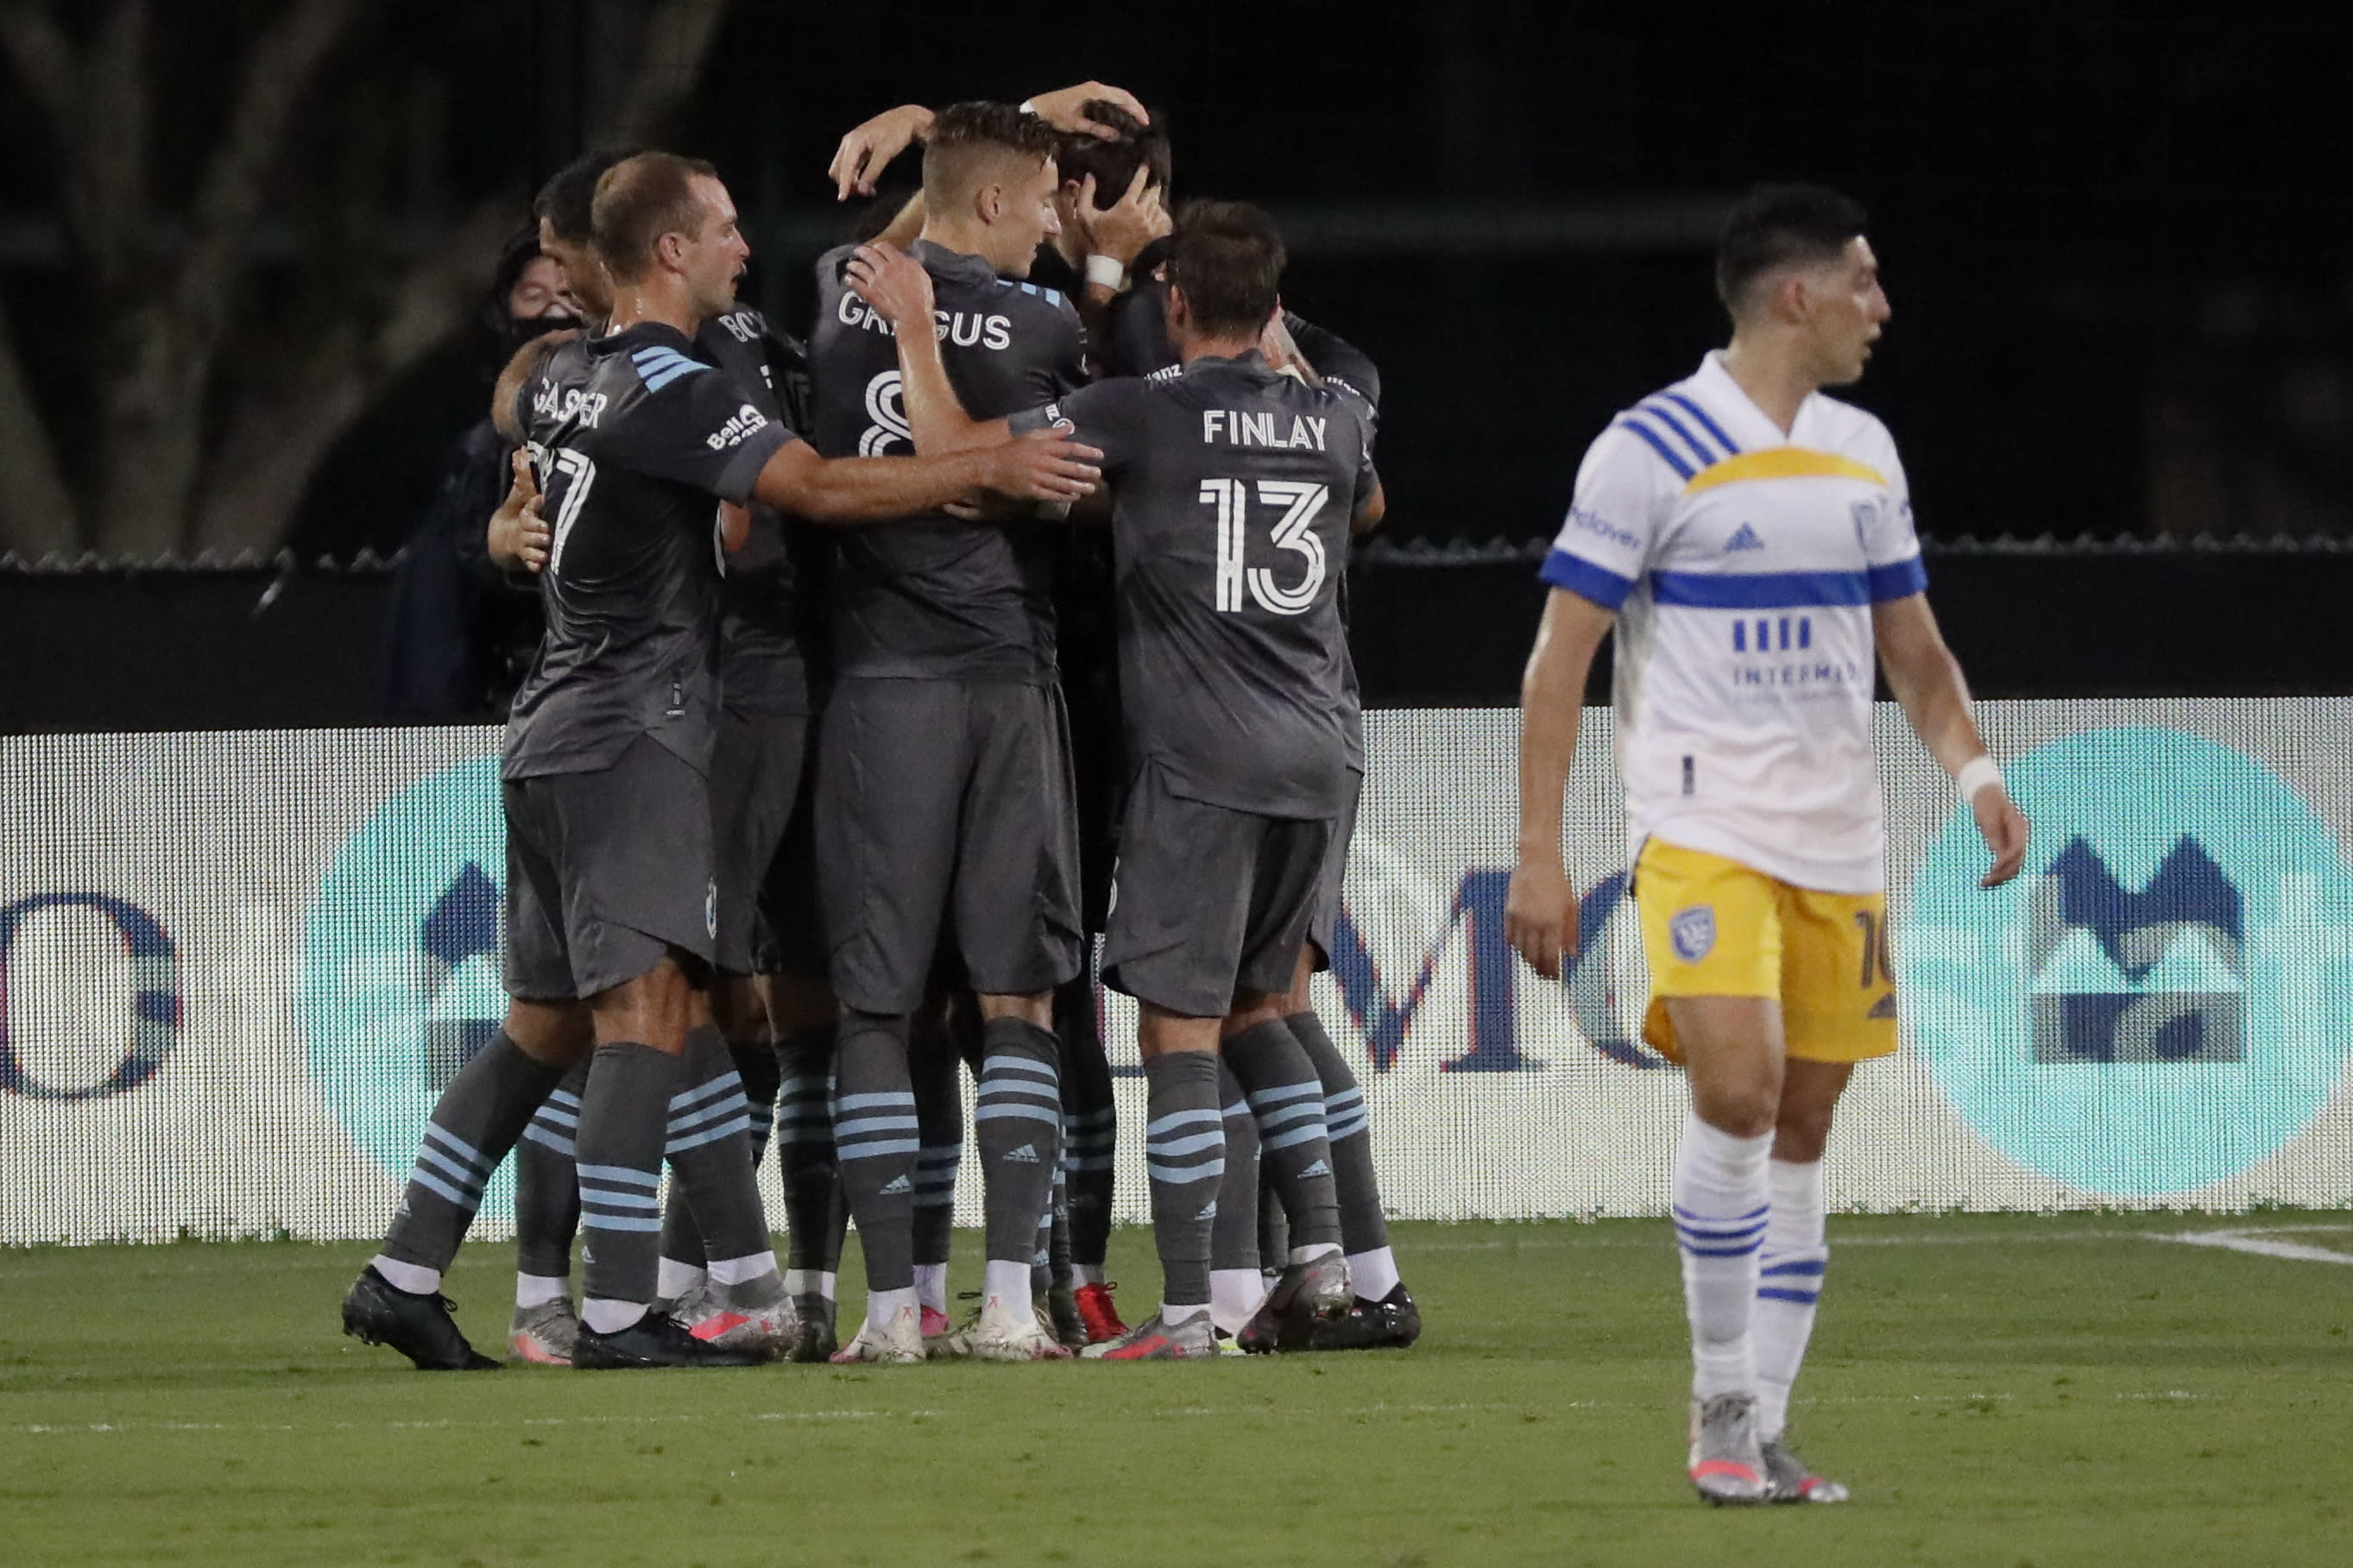 Minnesota United midfielder Robin Lod celebrates his goal as San Jose Earthquakes forward Cristian Espinoza walks off during the first half of an MLS soccer match, Saturday, Aug. 1, 2020, in Kissimmee, Fla. (AP Photo/John Raoux)